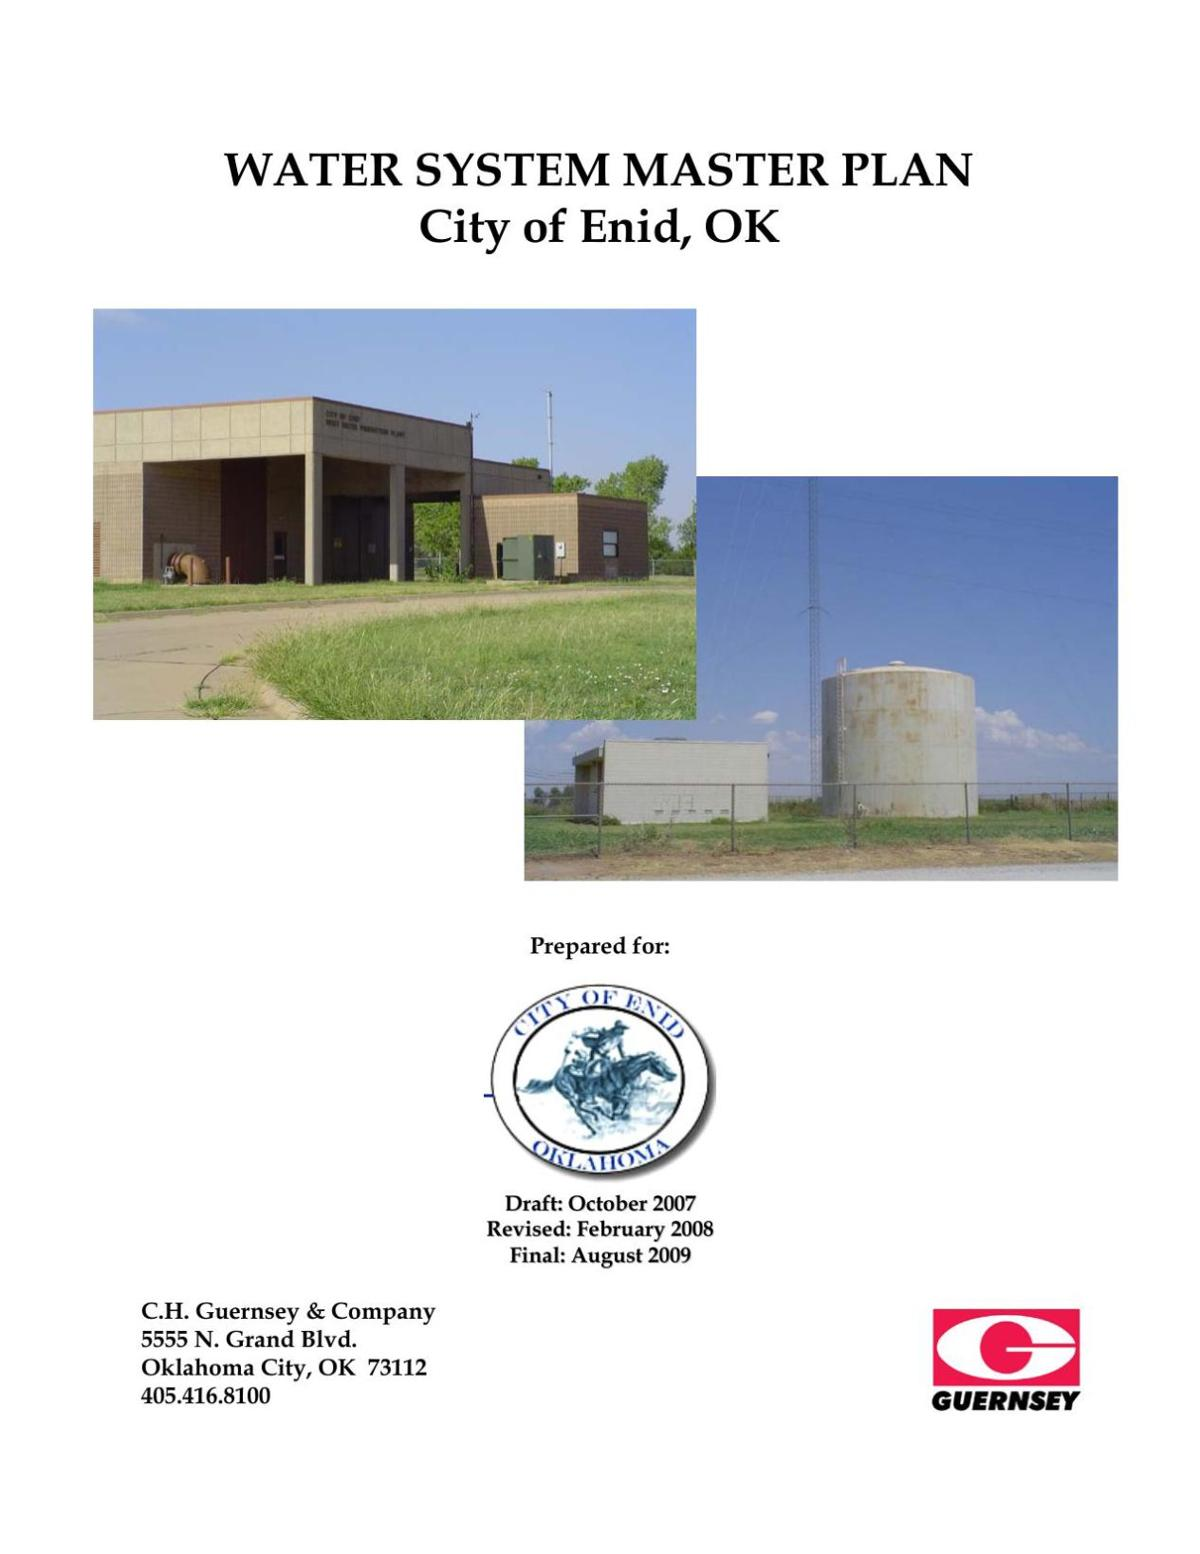 2009 City of Enid Water System Master Plan